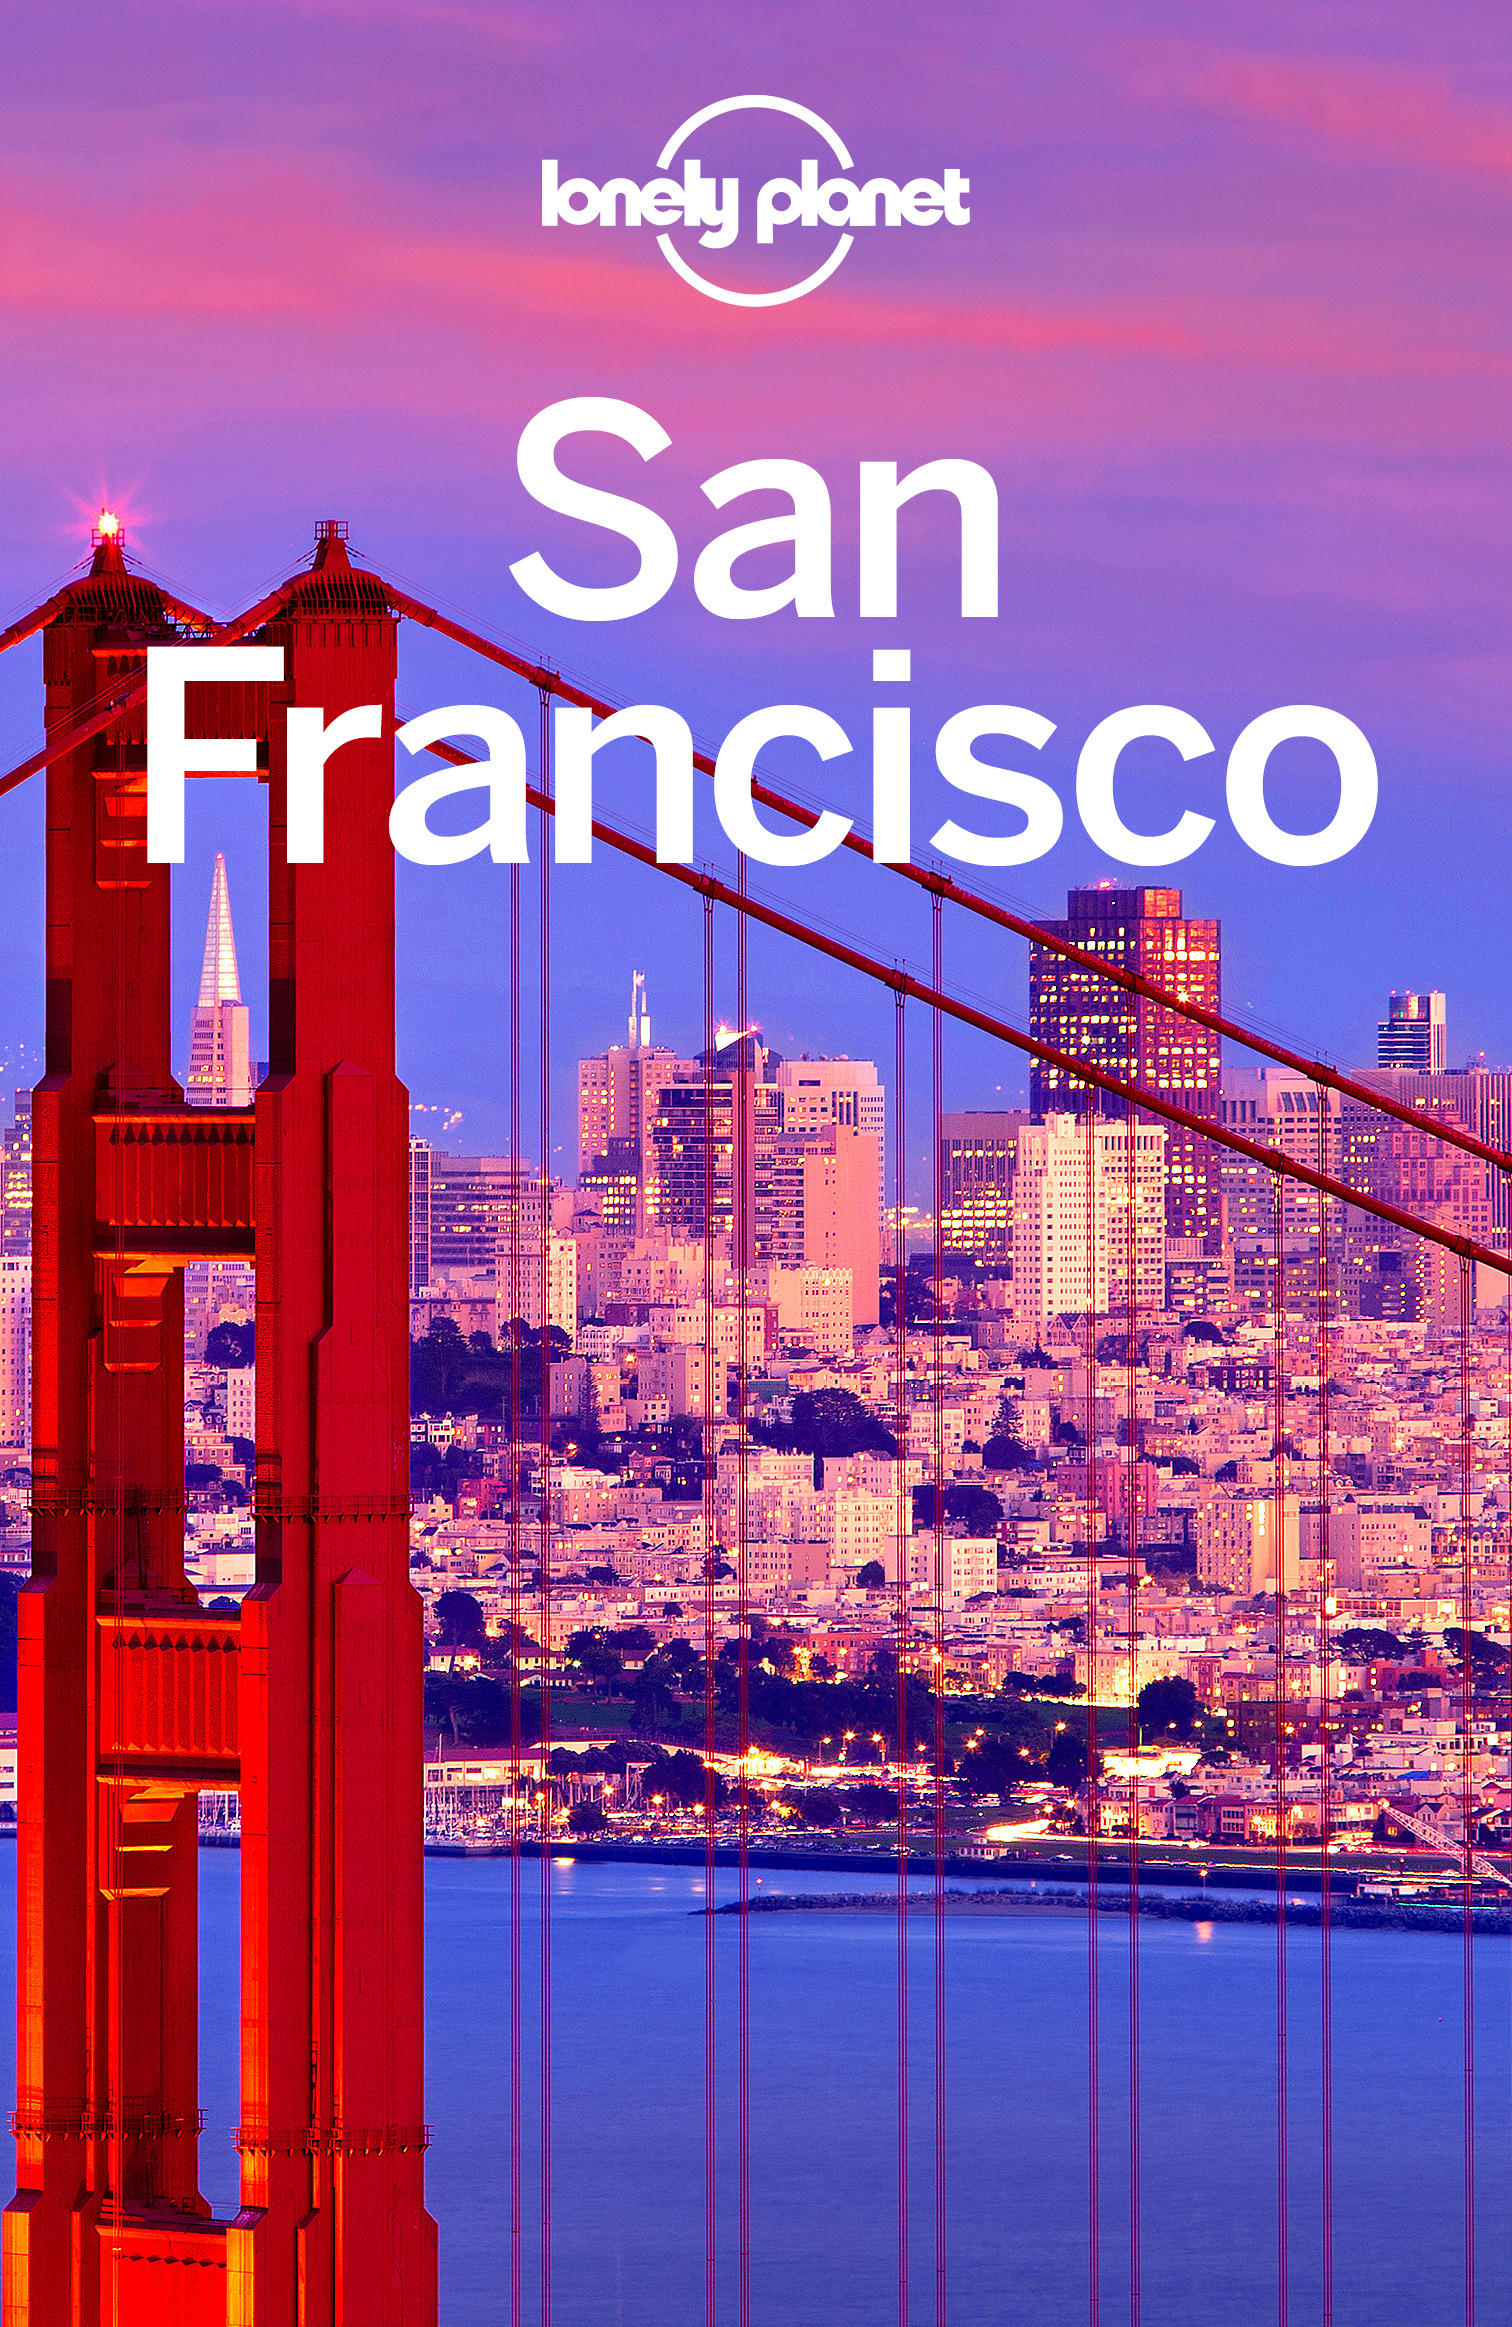 Planet, Lonely - Lonely Planet San Francisco, ebook